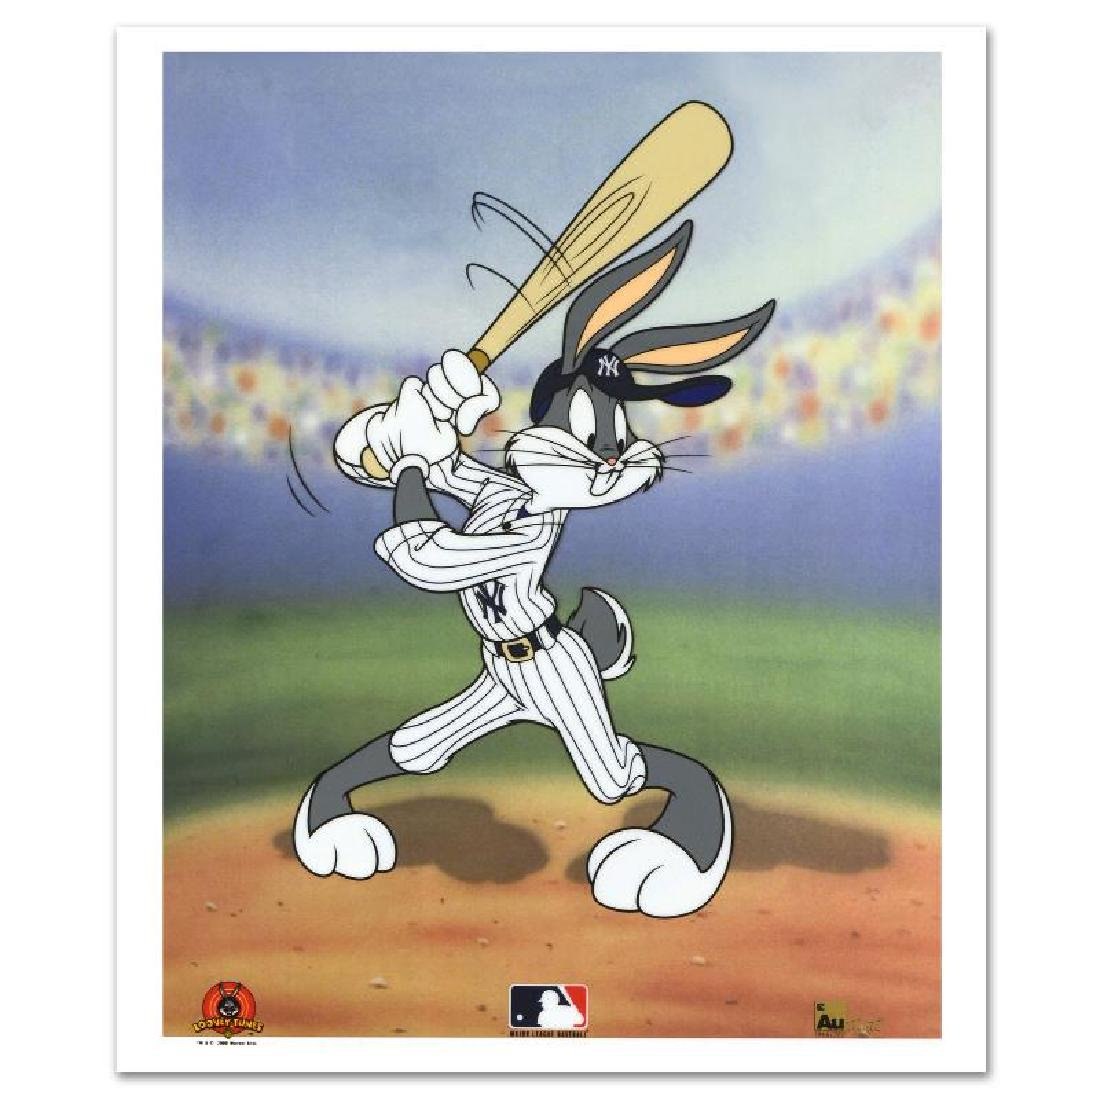 Bugs Bunny at Bat for the Yankees Limited Edition - 3